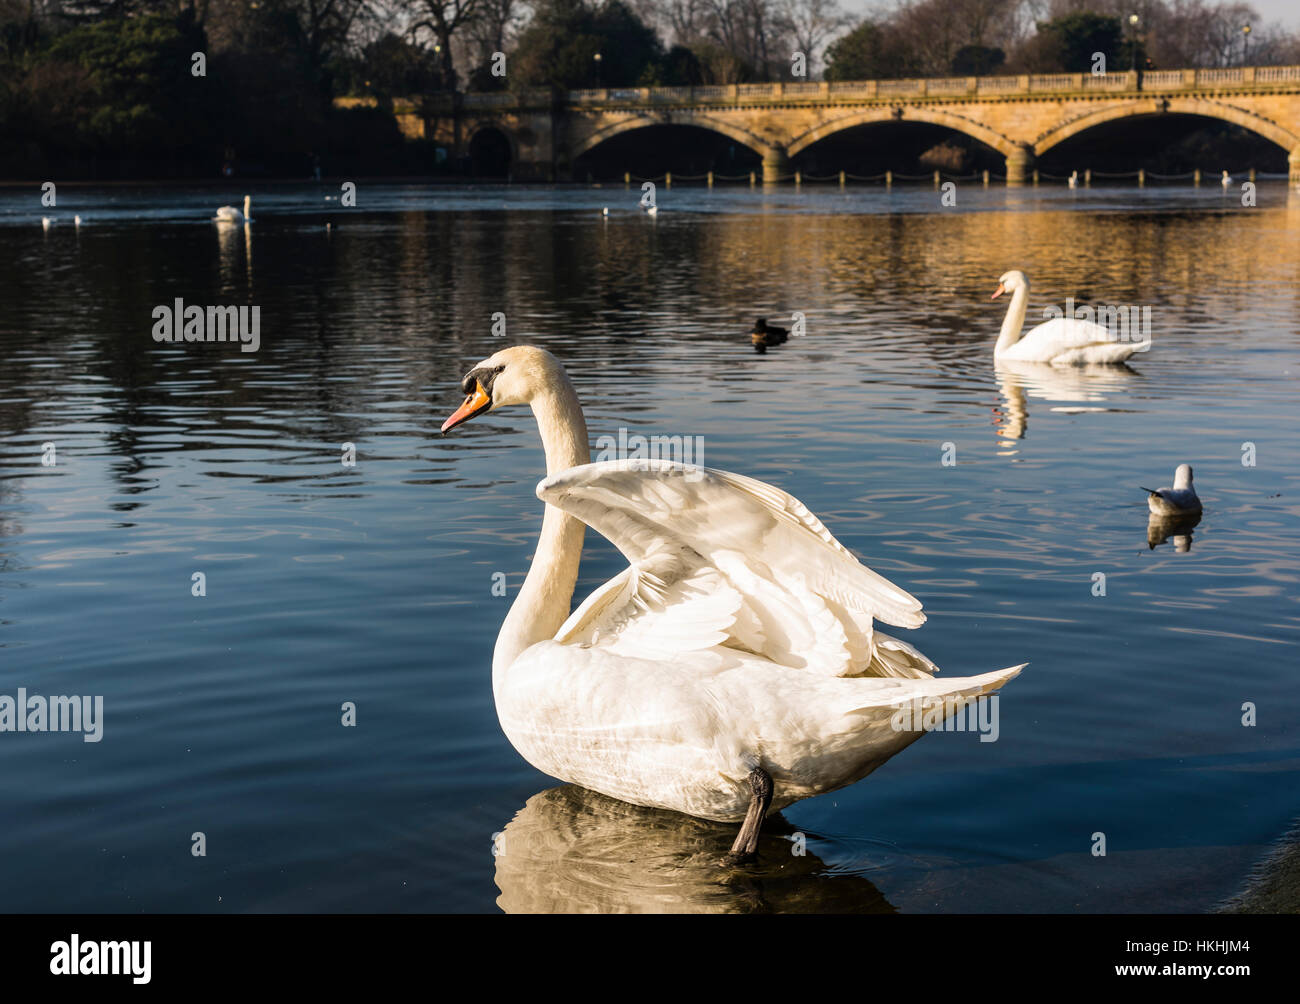 Majestic swans on The Serpentine lake in Hyde Park, London, UK - Stock Image